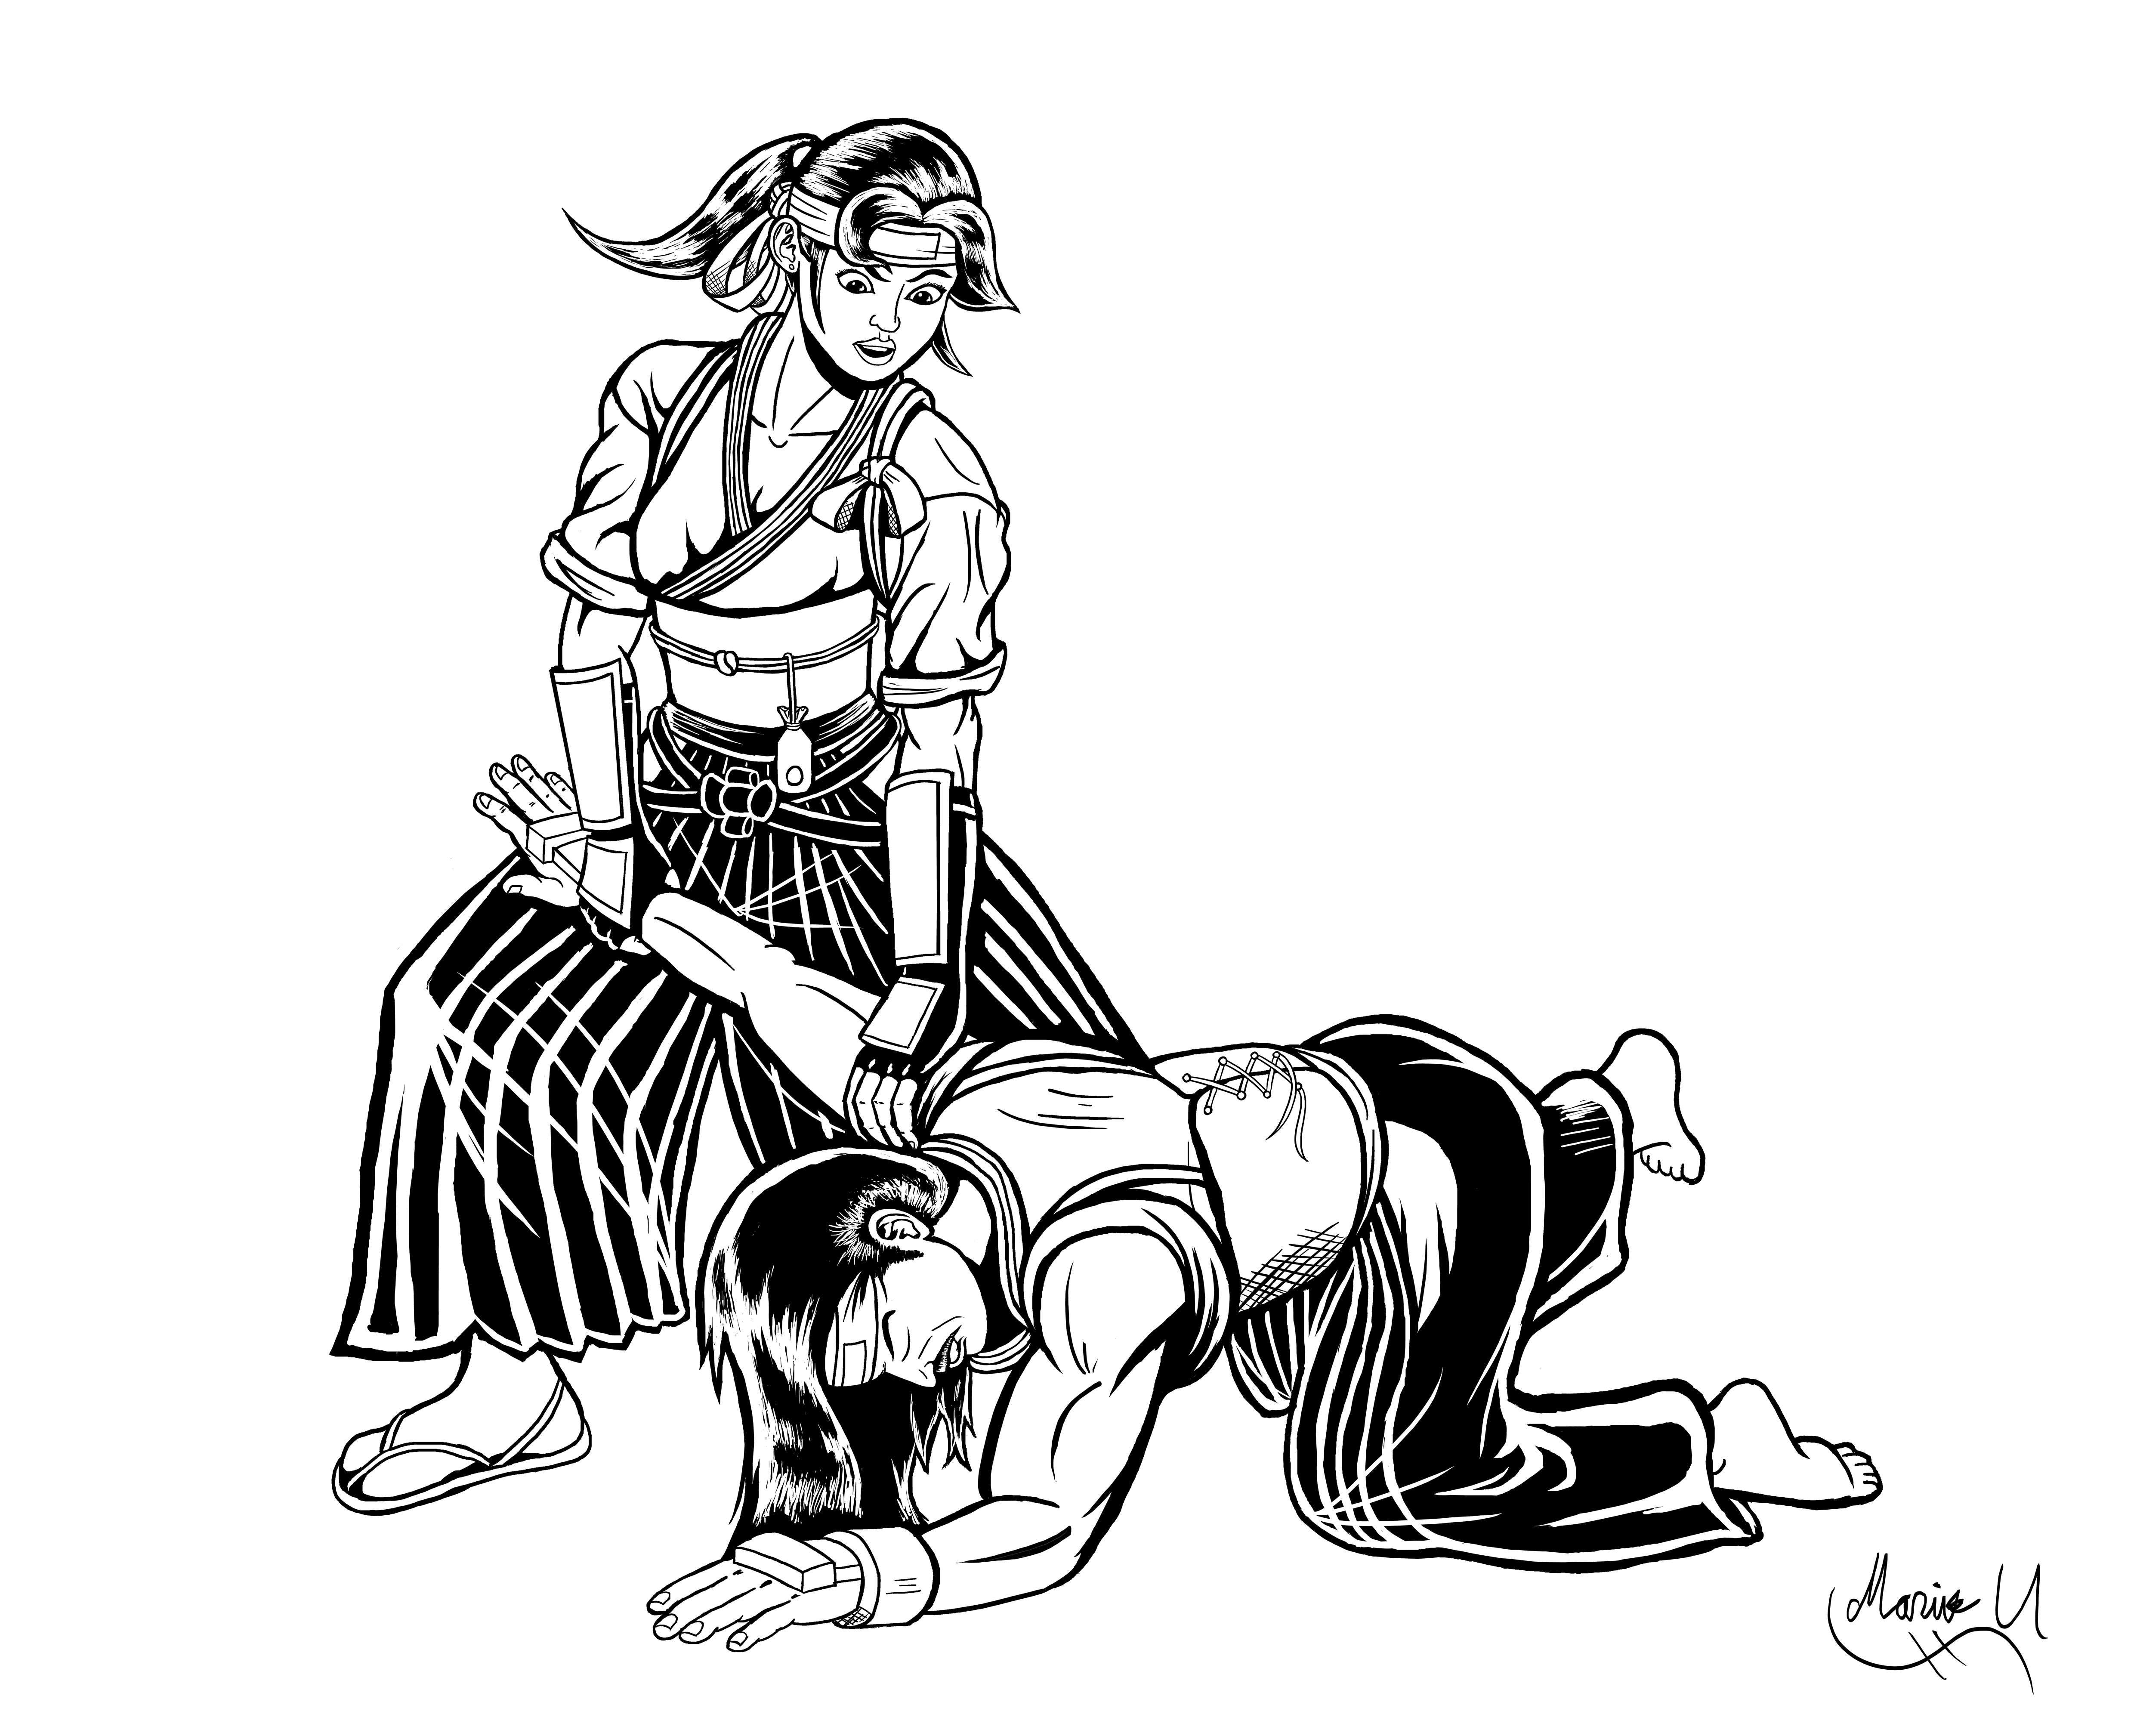 Kasumi practicing Ikkyo with her father Inked